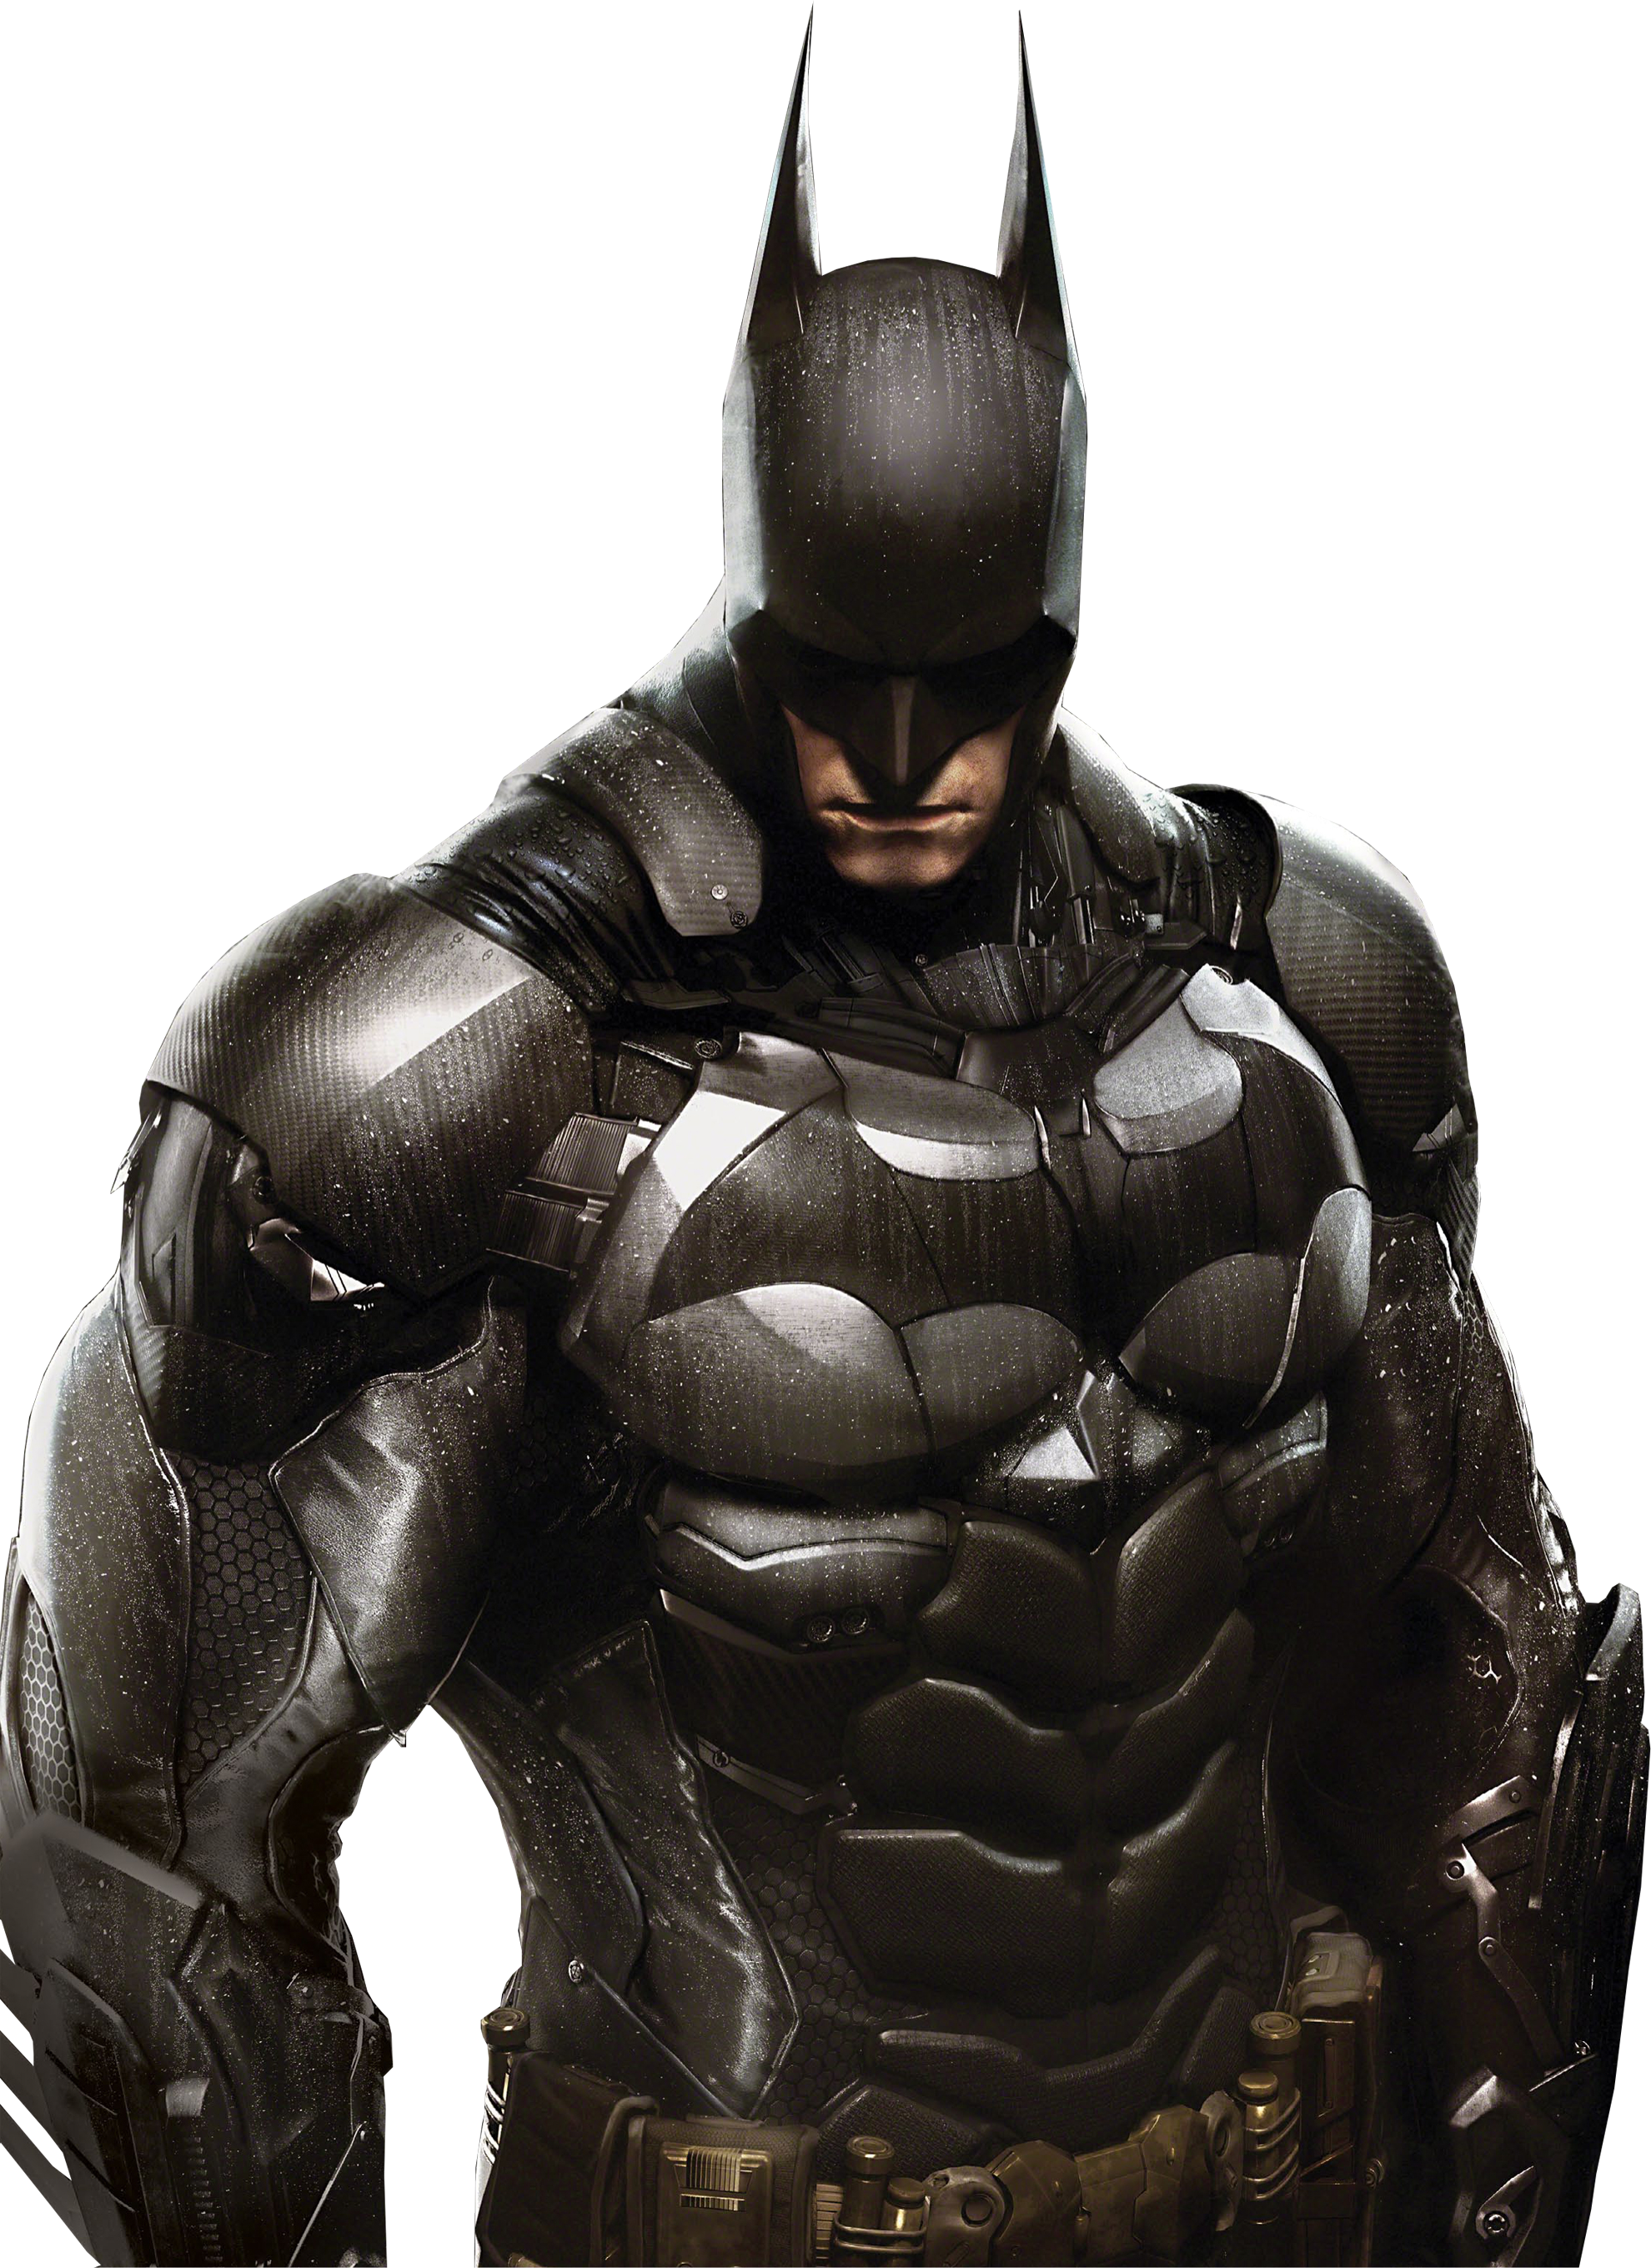 Batman Arkham Knight Render by Amia2172 on DeviantArt